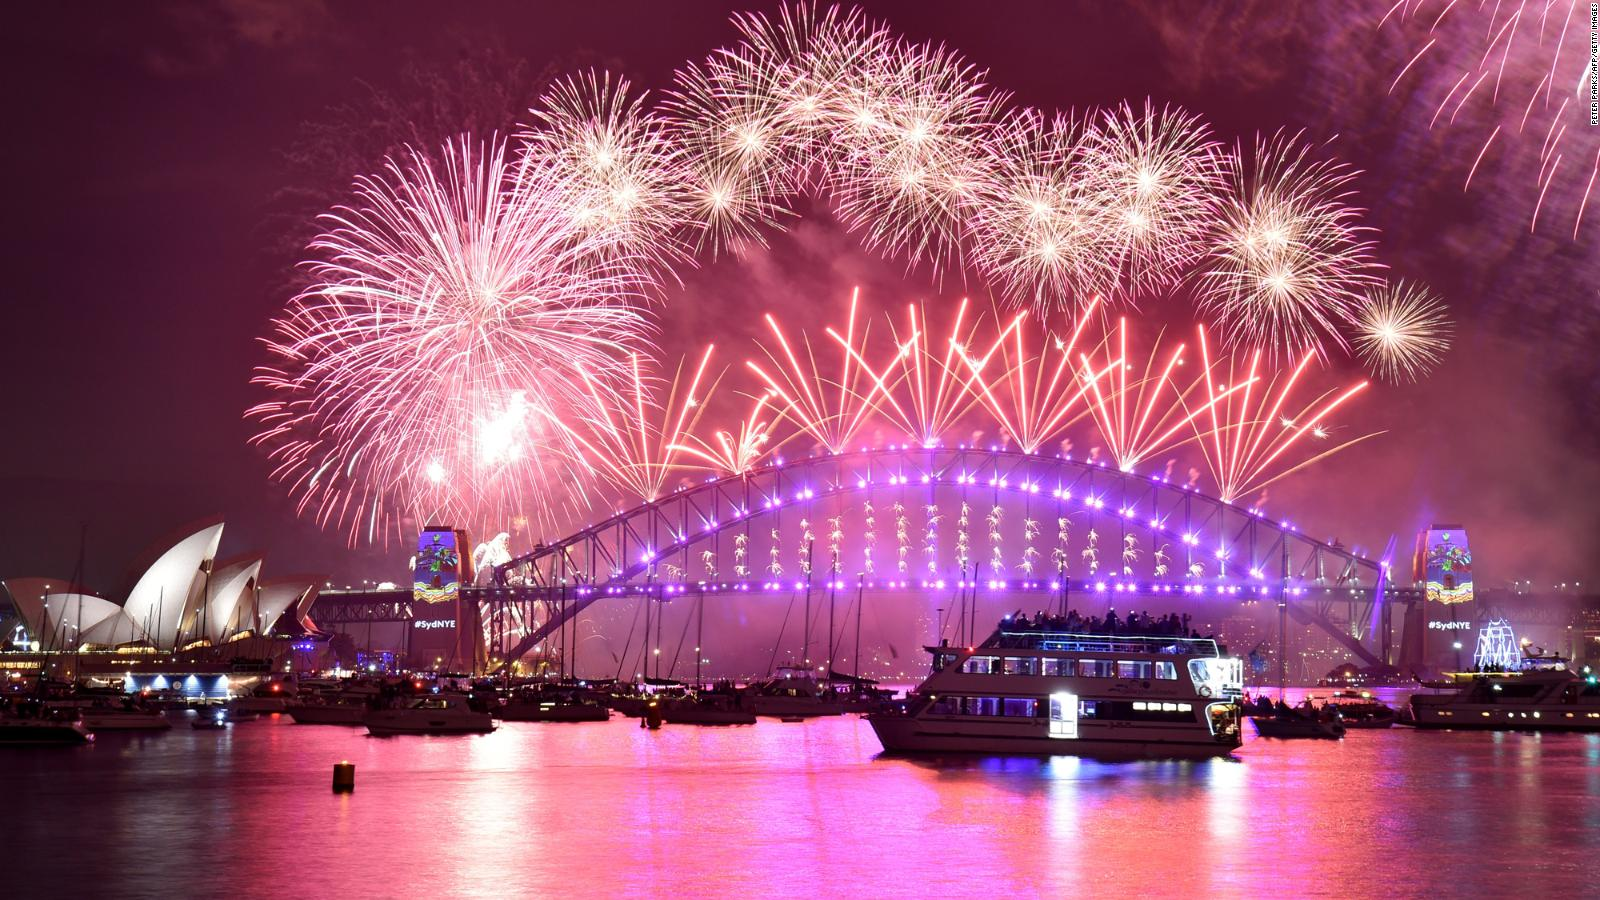 10 great places to spend new year s eve cnn travel 10 great places to spend new year s eve